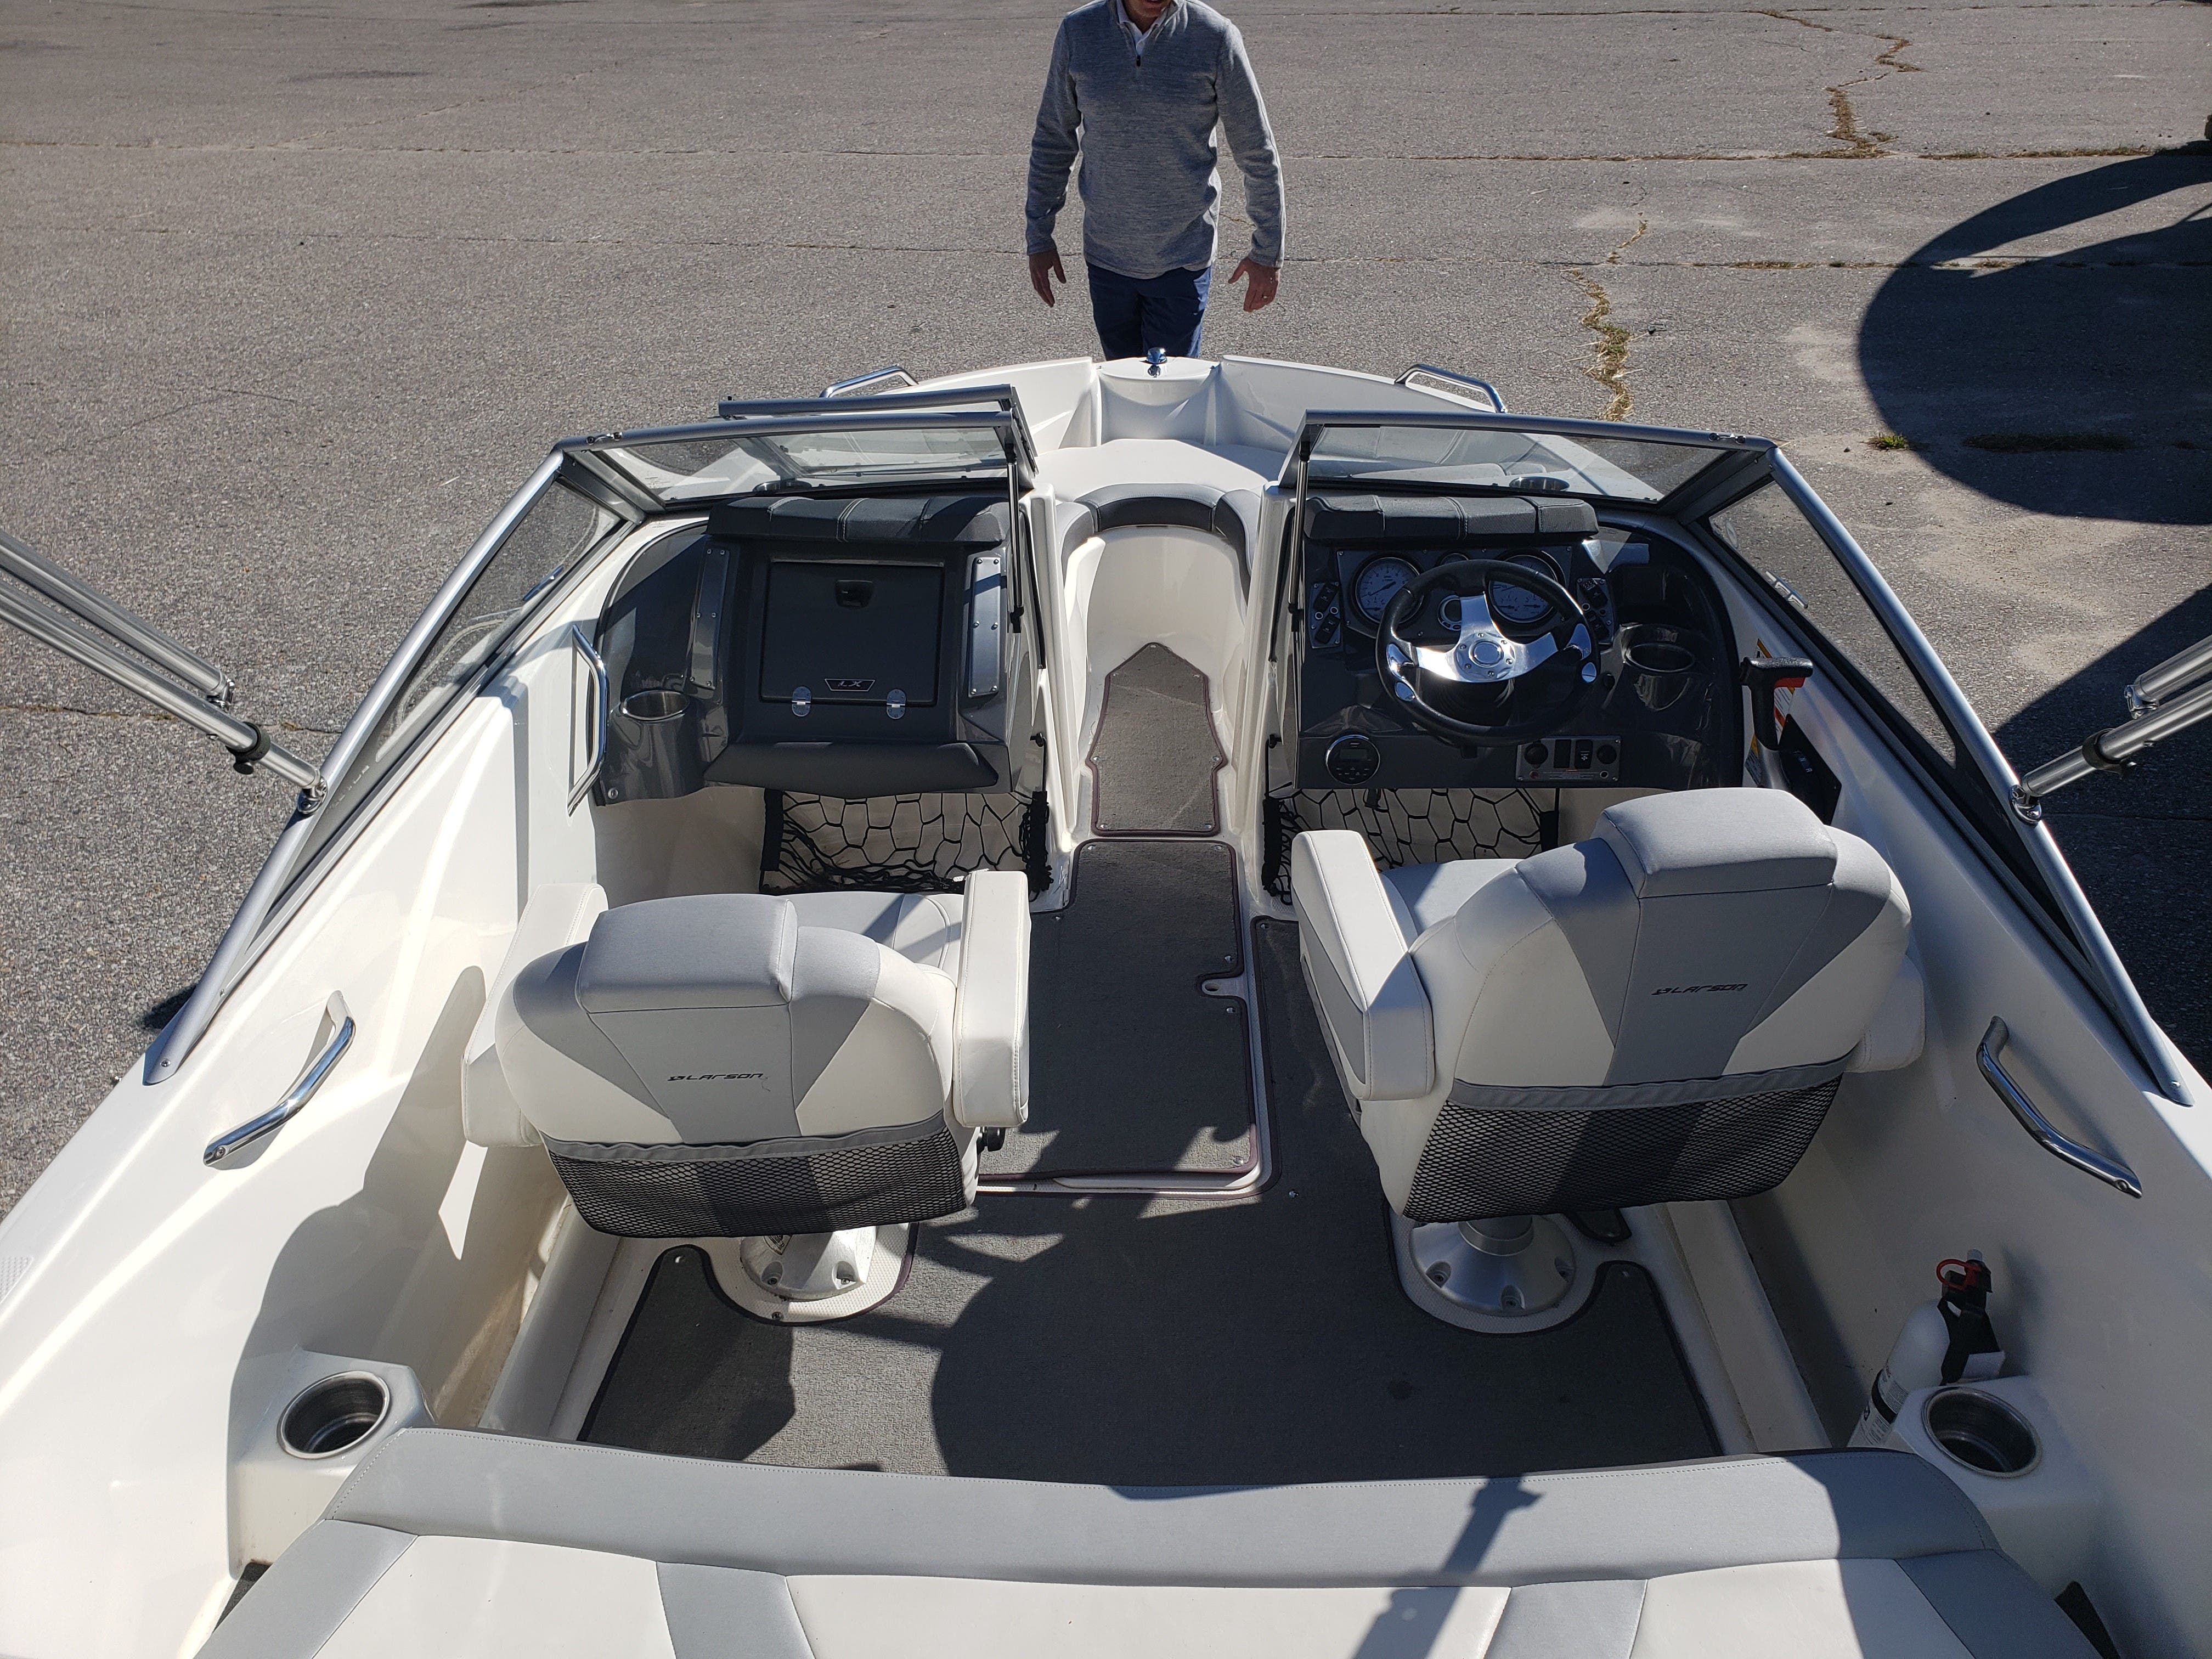 2014 Larson boat for sale, model of the boat is LX 195 S & Image # 7 of 10